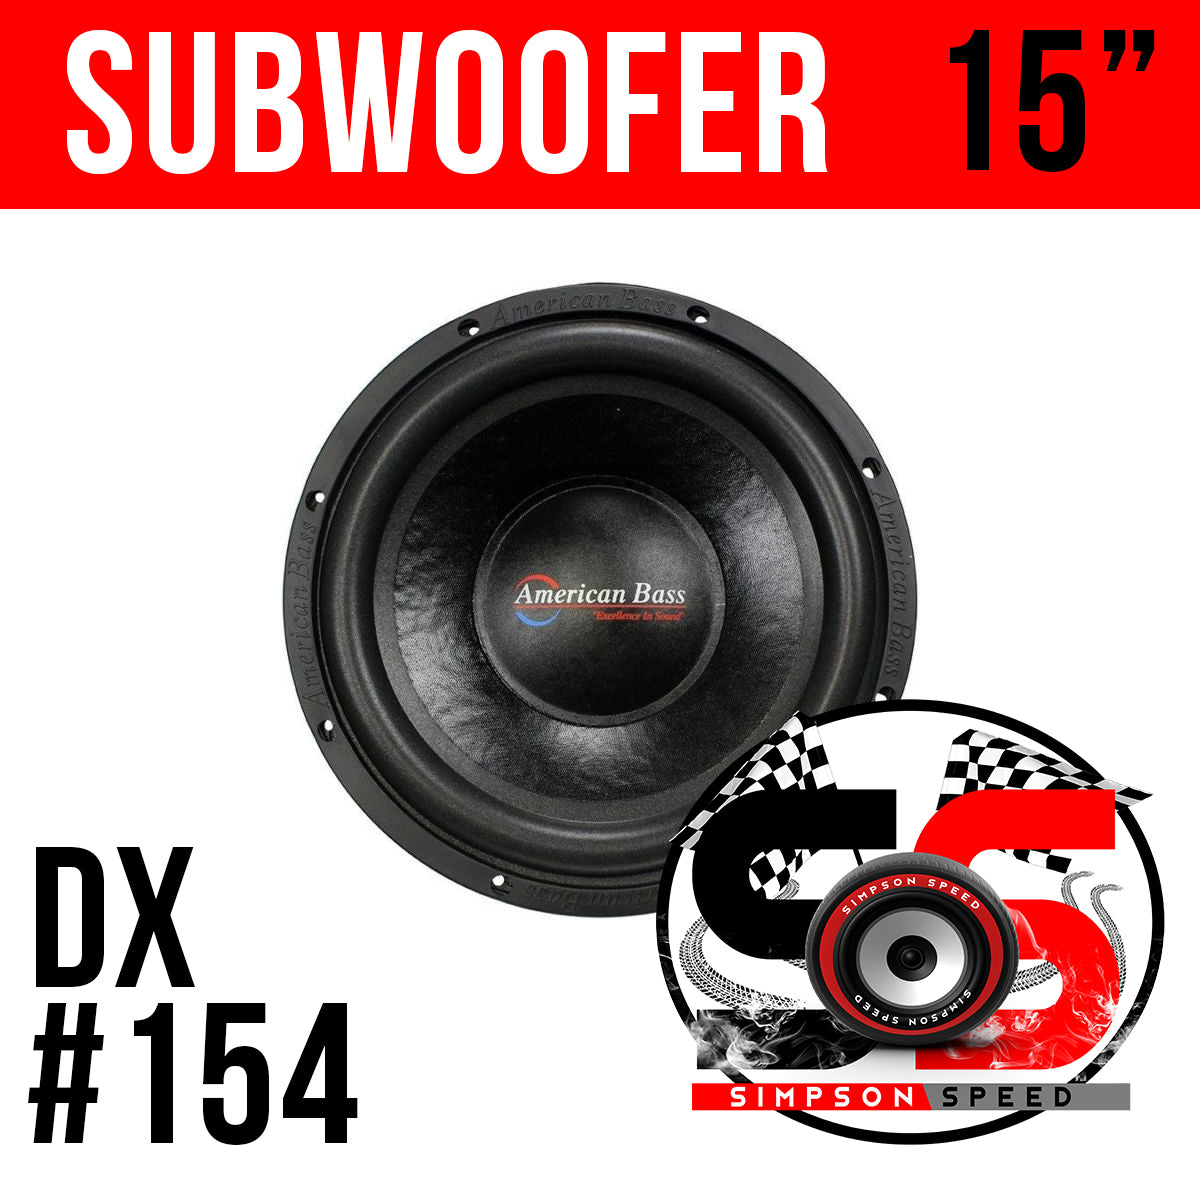 DX 15 American Bass Subwoofer